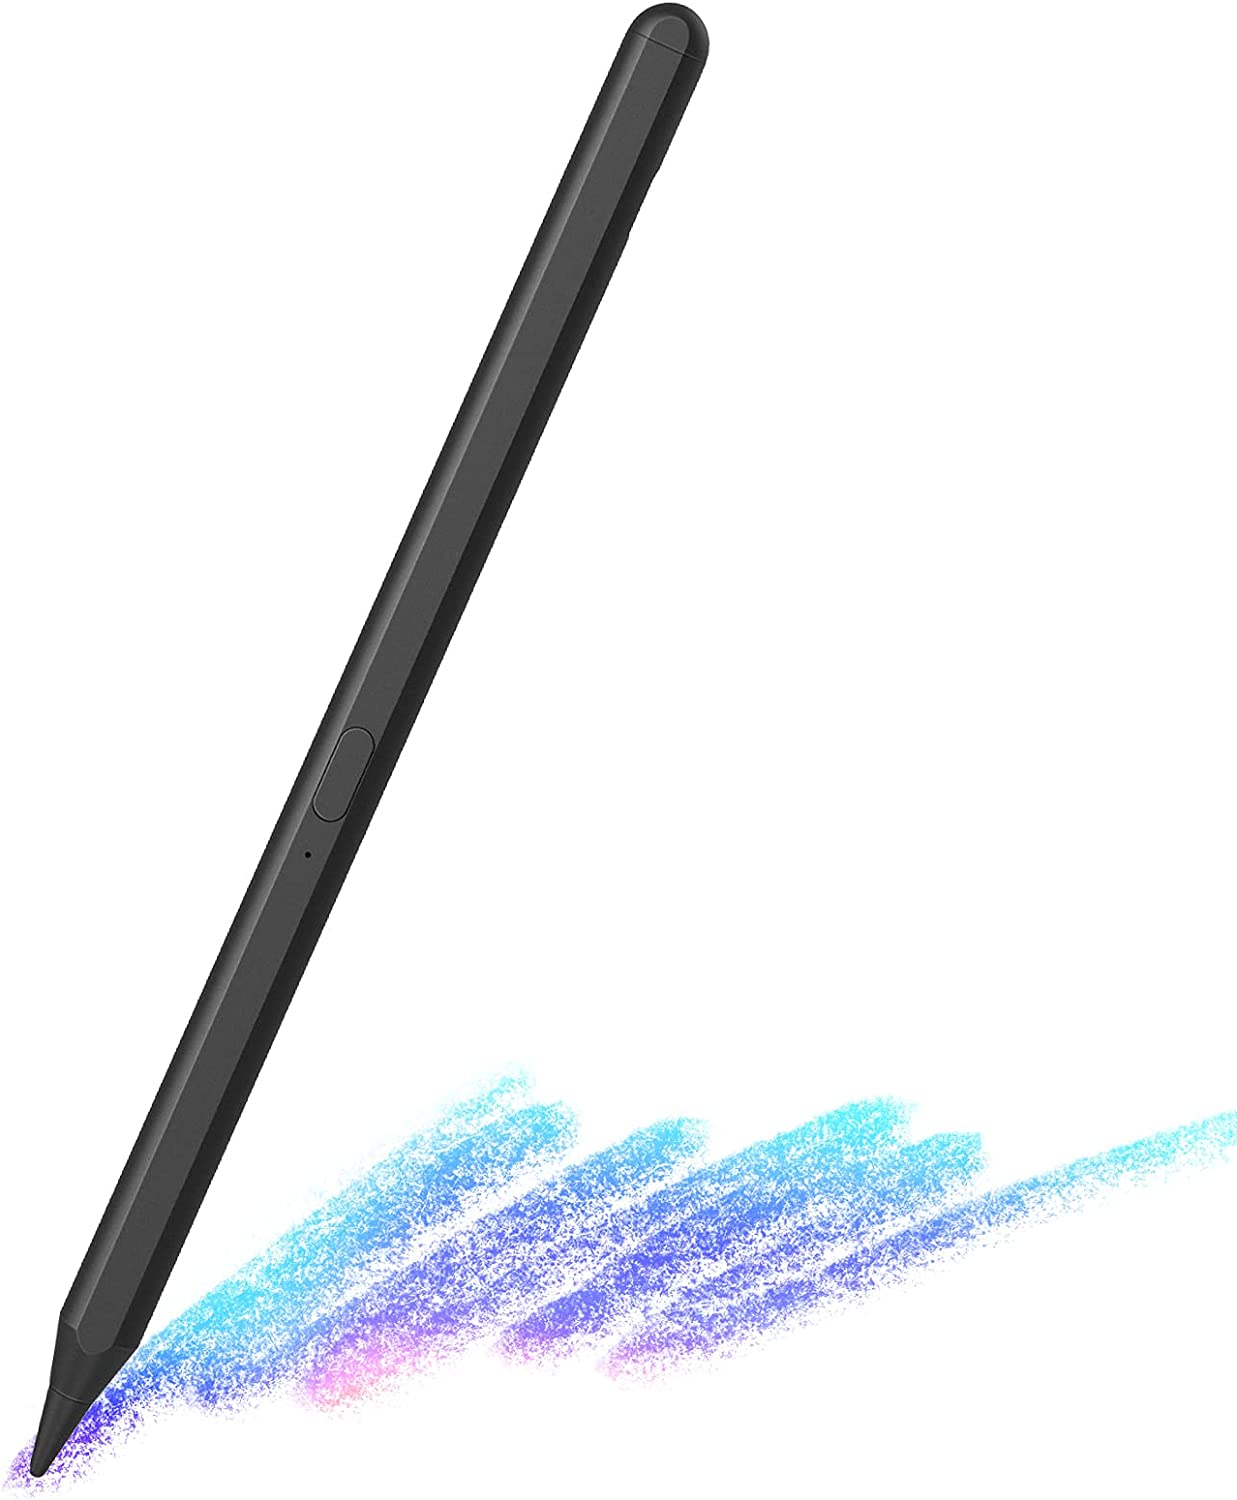 Stylus Pen for iPad with Palm Rejection, iPad Pen 8th Generation Compatible with (2018-2020) iPad 6/7th Gen, Apple Pencil iPad Pro 2nd/3rd/4th/5th (11/12.9 Inch), iPad Air 3rd/4th Gen